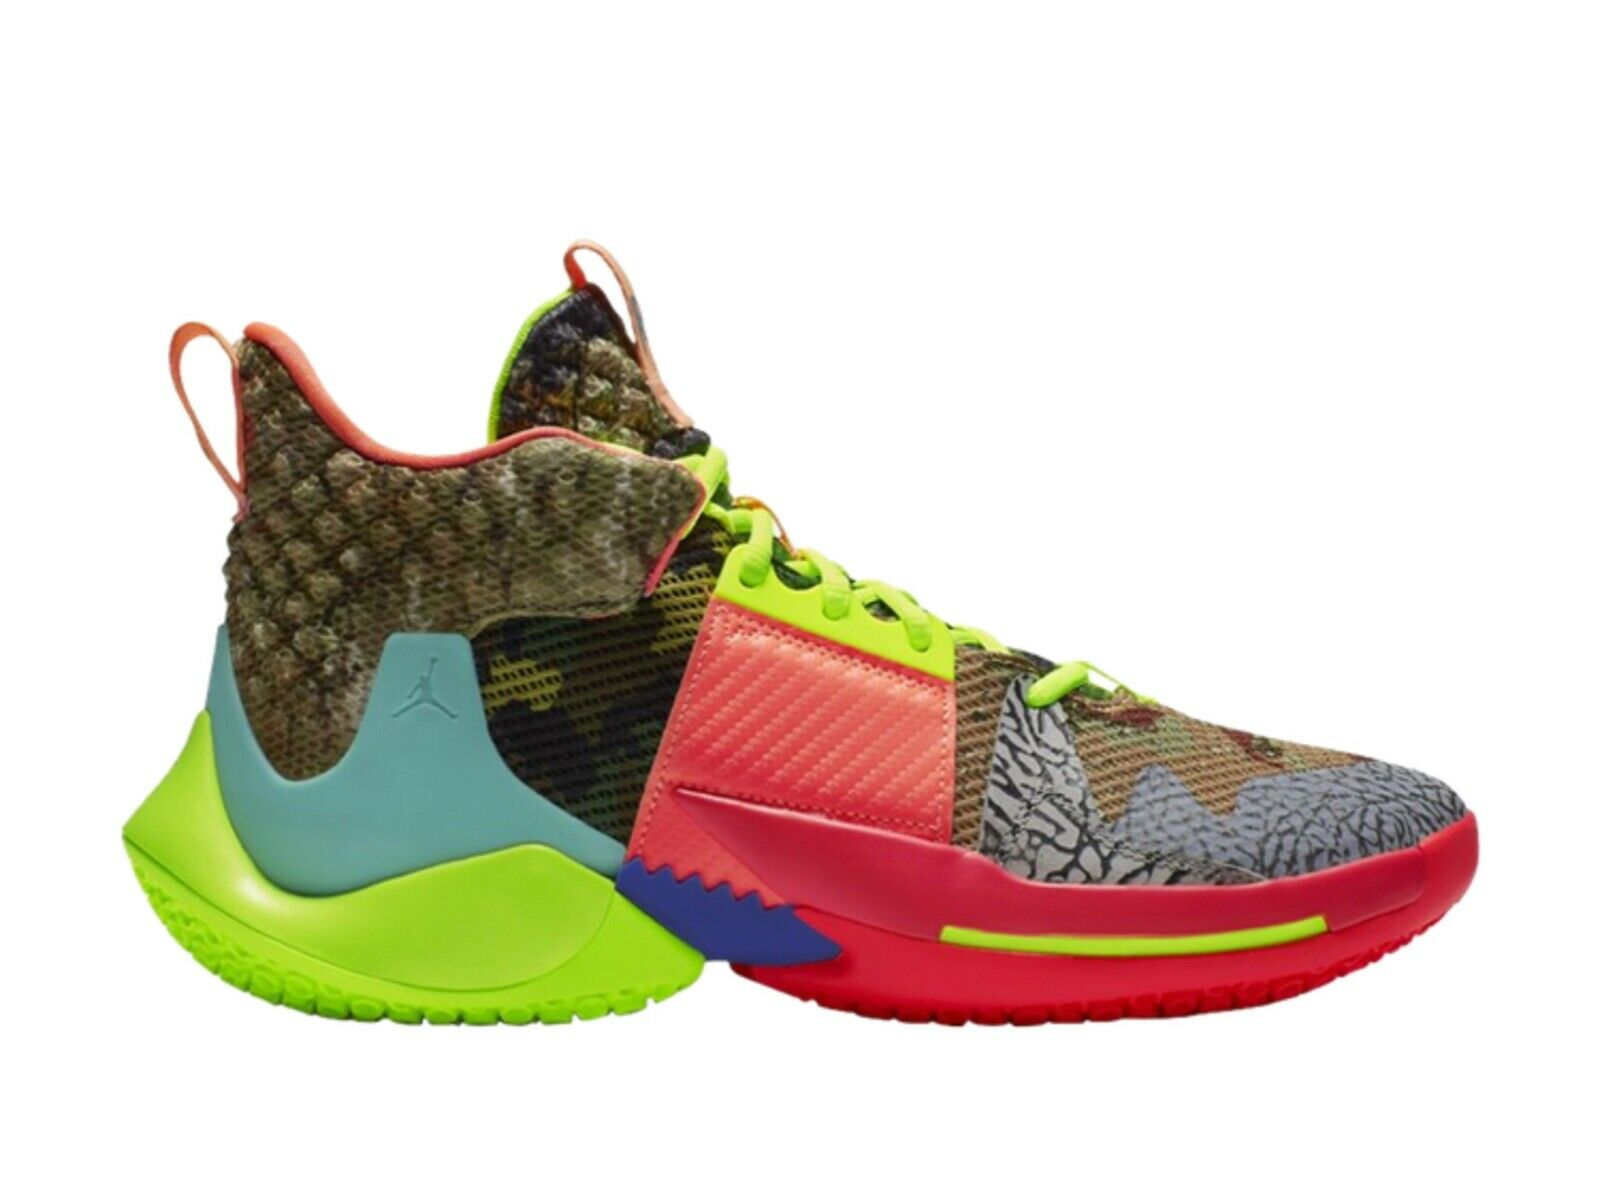 Nike Air Jordan Why Not Zero.2 Russell Westbrook All Star Multi color